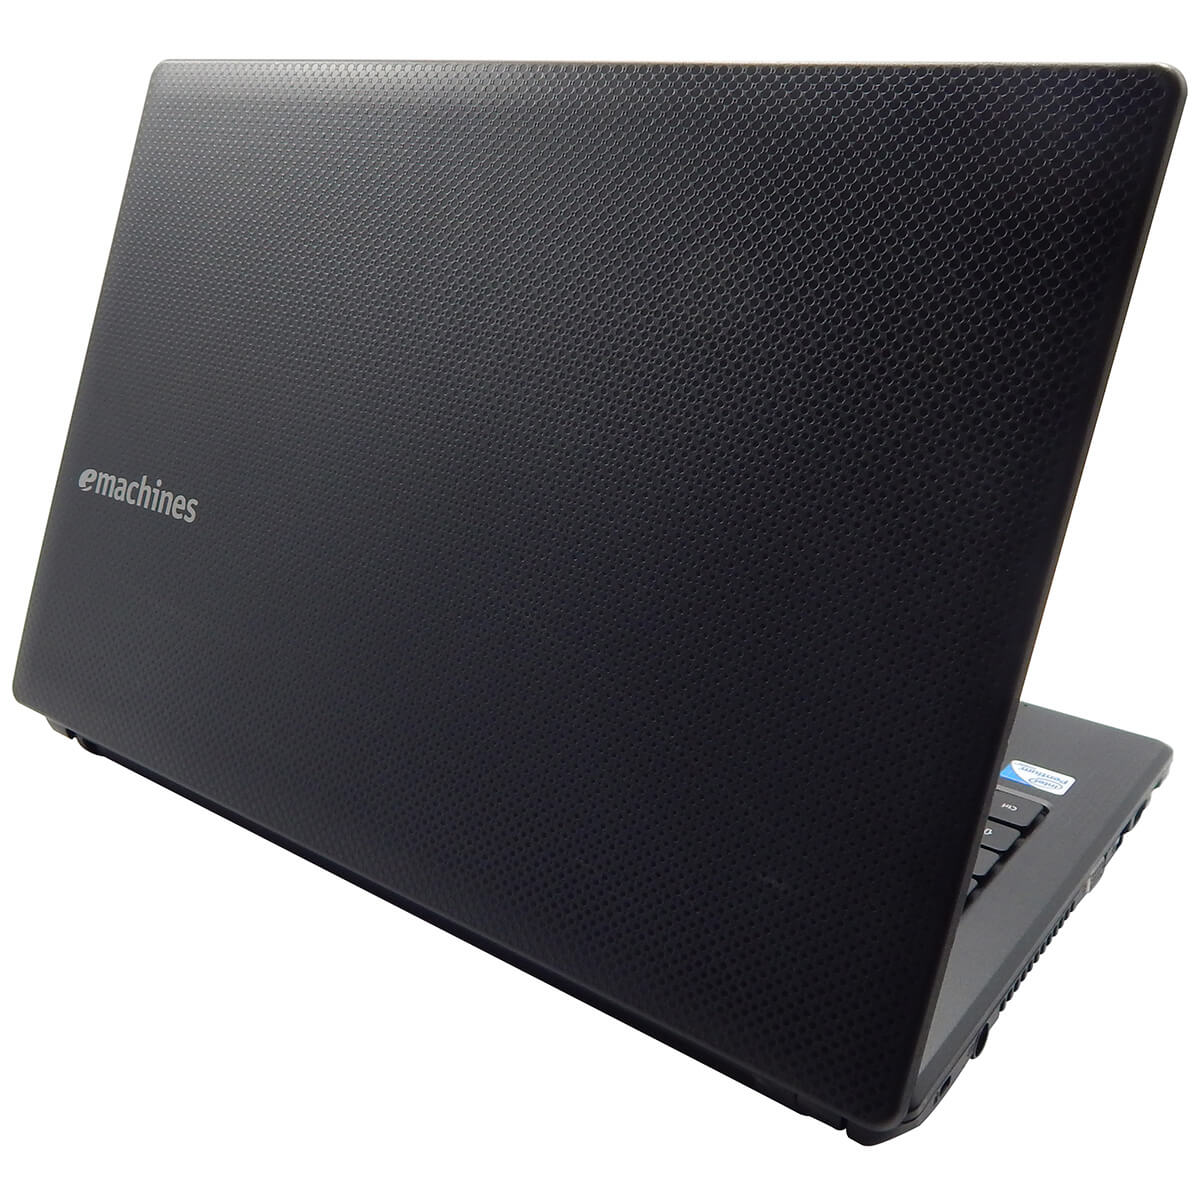 "Notebook Acer Emachines D728-4079 Intel Dual Core T4500 - 4gb - 320gb - Led 14"" - Seminovo"